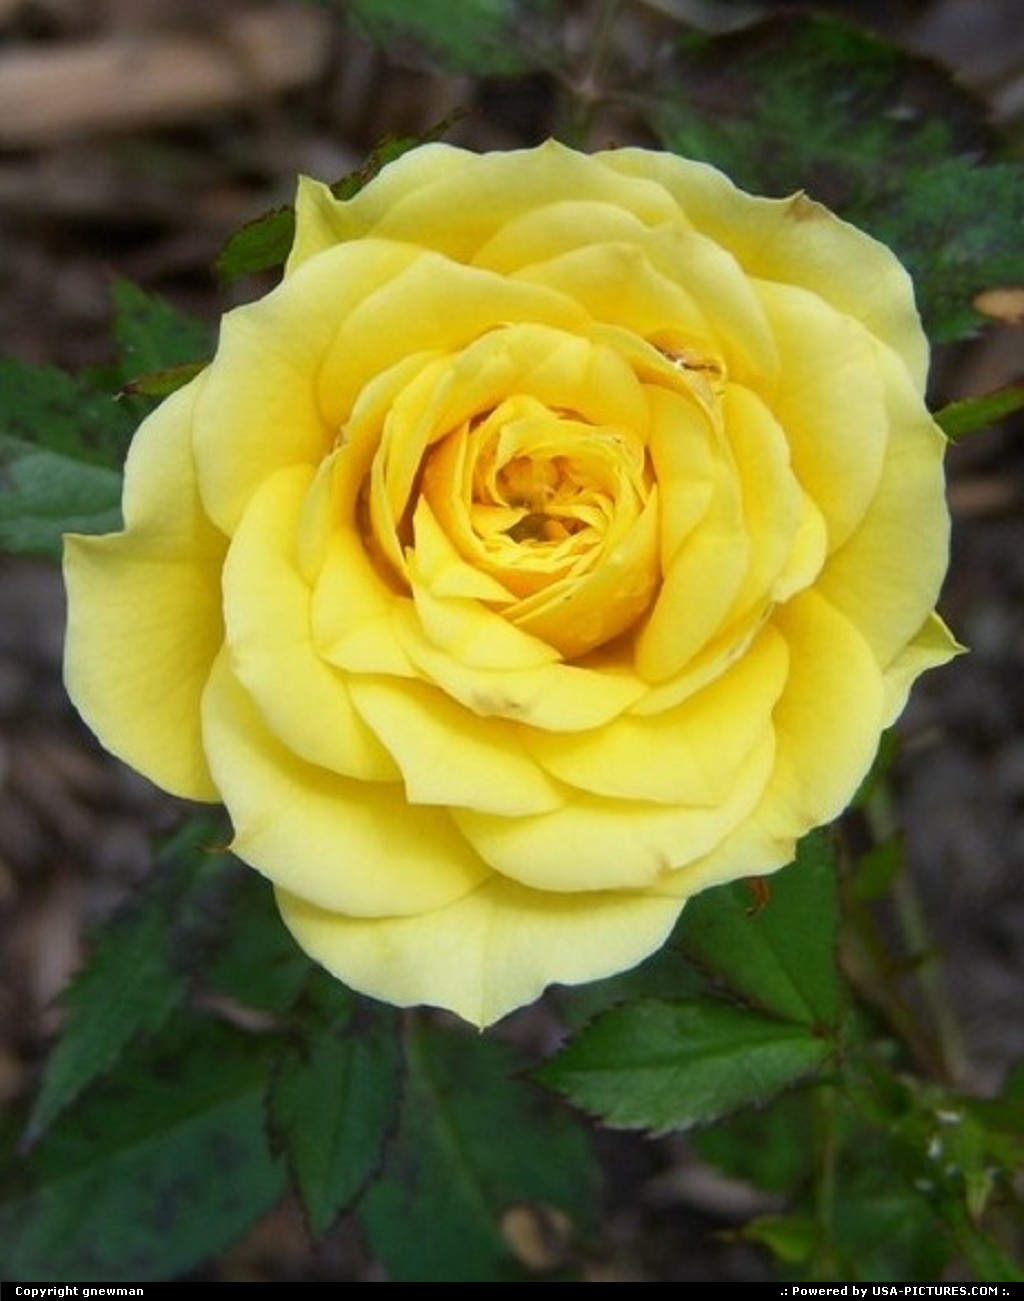 Picture by gnewman: West Portsmouth Ohio   flower, rose, nature